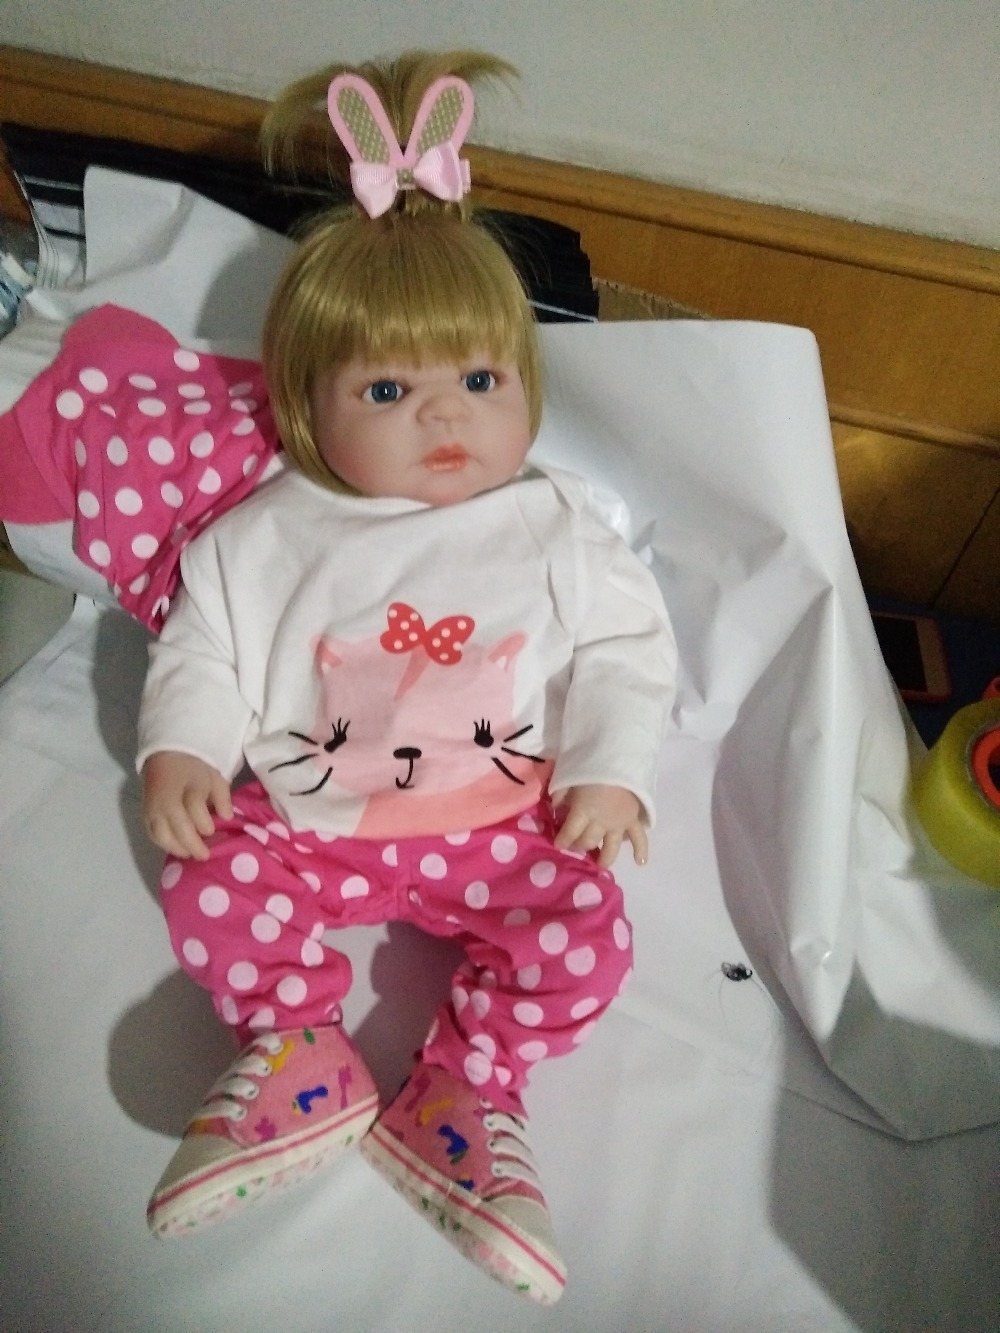 New Arrival 23'' 57cm Reborn Girl Doll Realista Full Silicone Body Lifelike Baby Doll Toys For Kids Child Bedtime Play Xmas Gift new arrival 23 57cm baby girl doll full silicone body lifelike bebe reborn bonecas handmade baby toy for kids christmas gifts